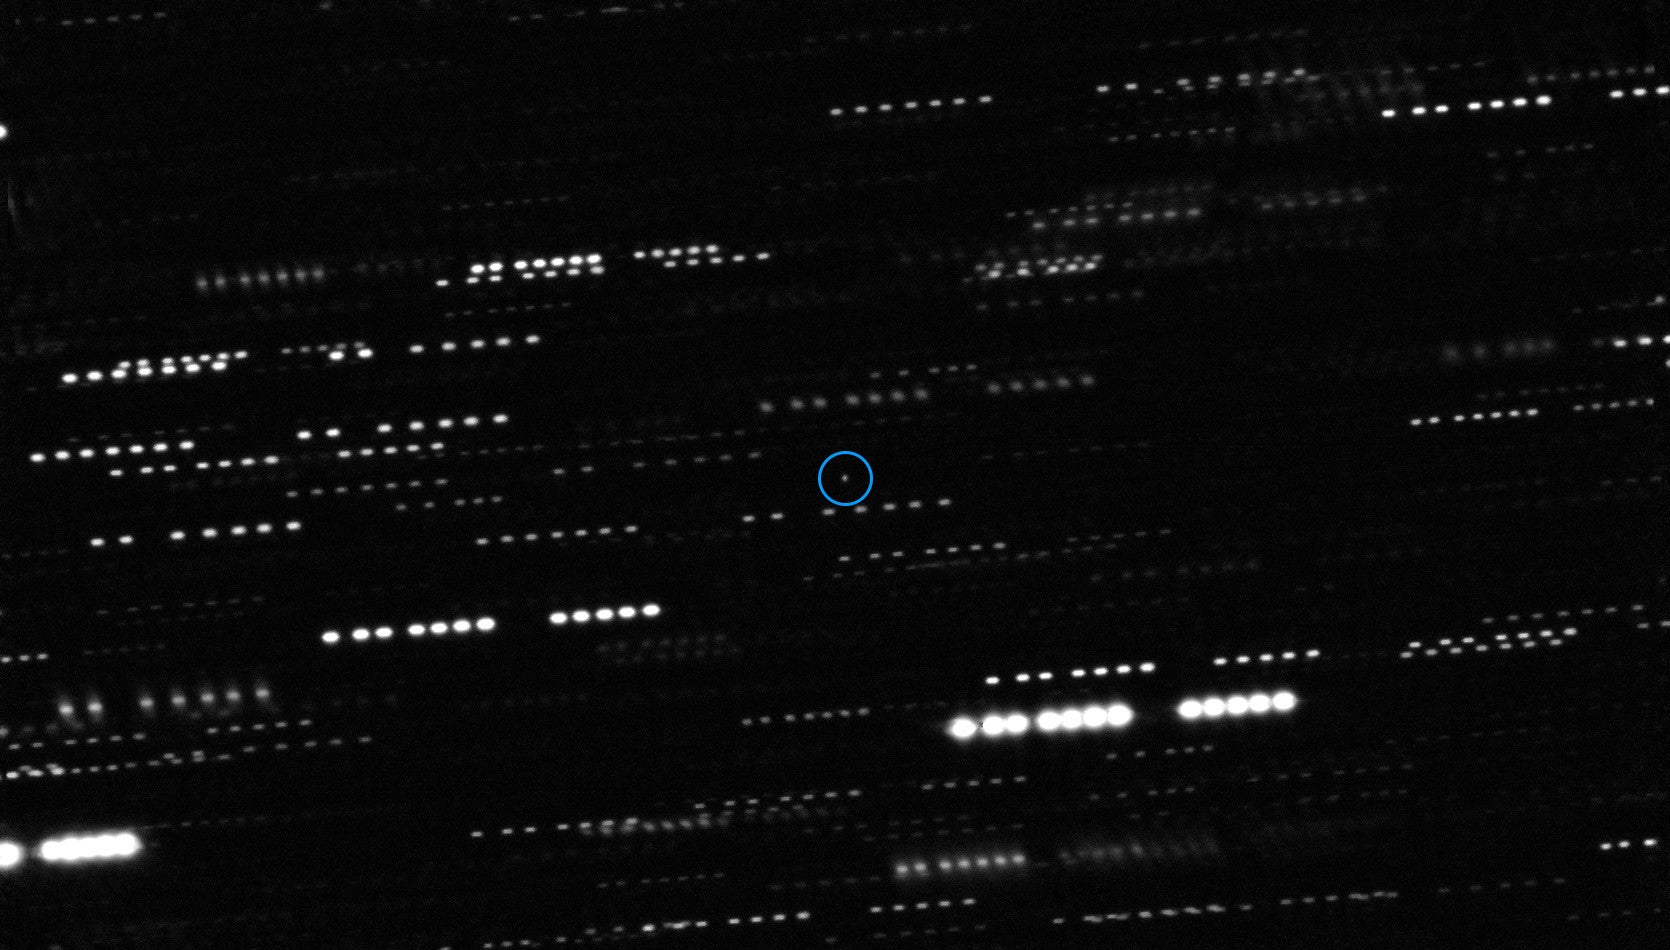 Oumuamua appears as a faint dot in the center of this image